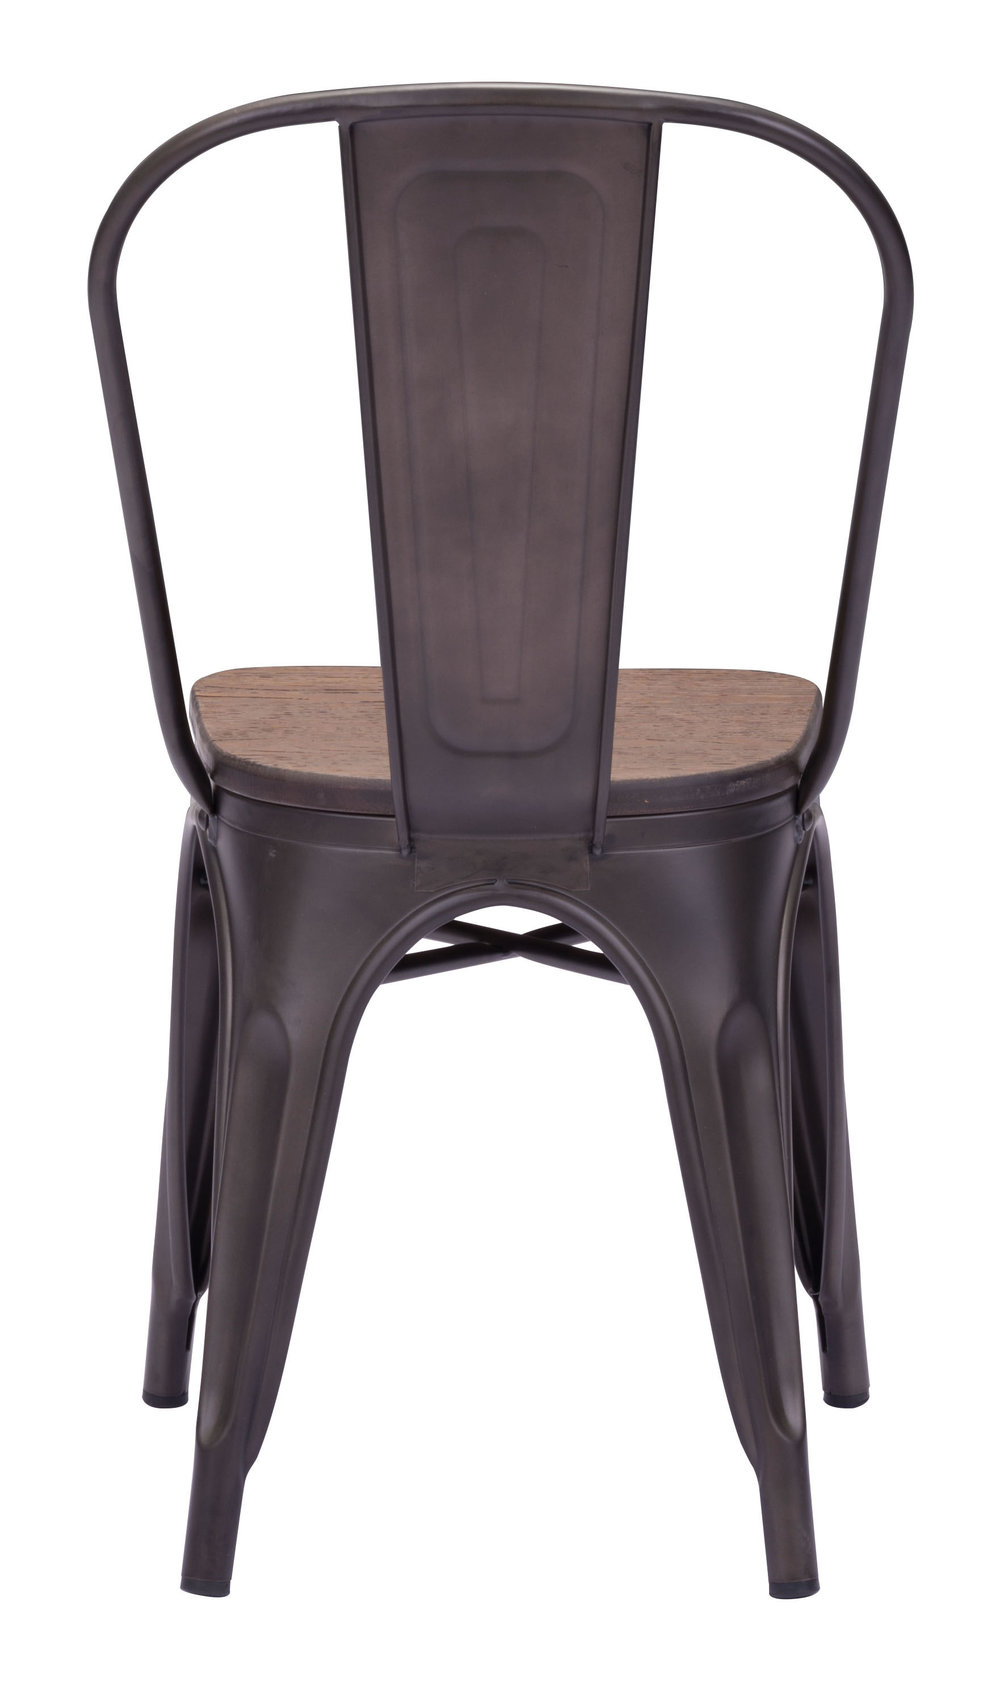 ZUO MODERN CONTEMPORARY, INC - Elio Dining Chair - Set of 2 - Rustic Black